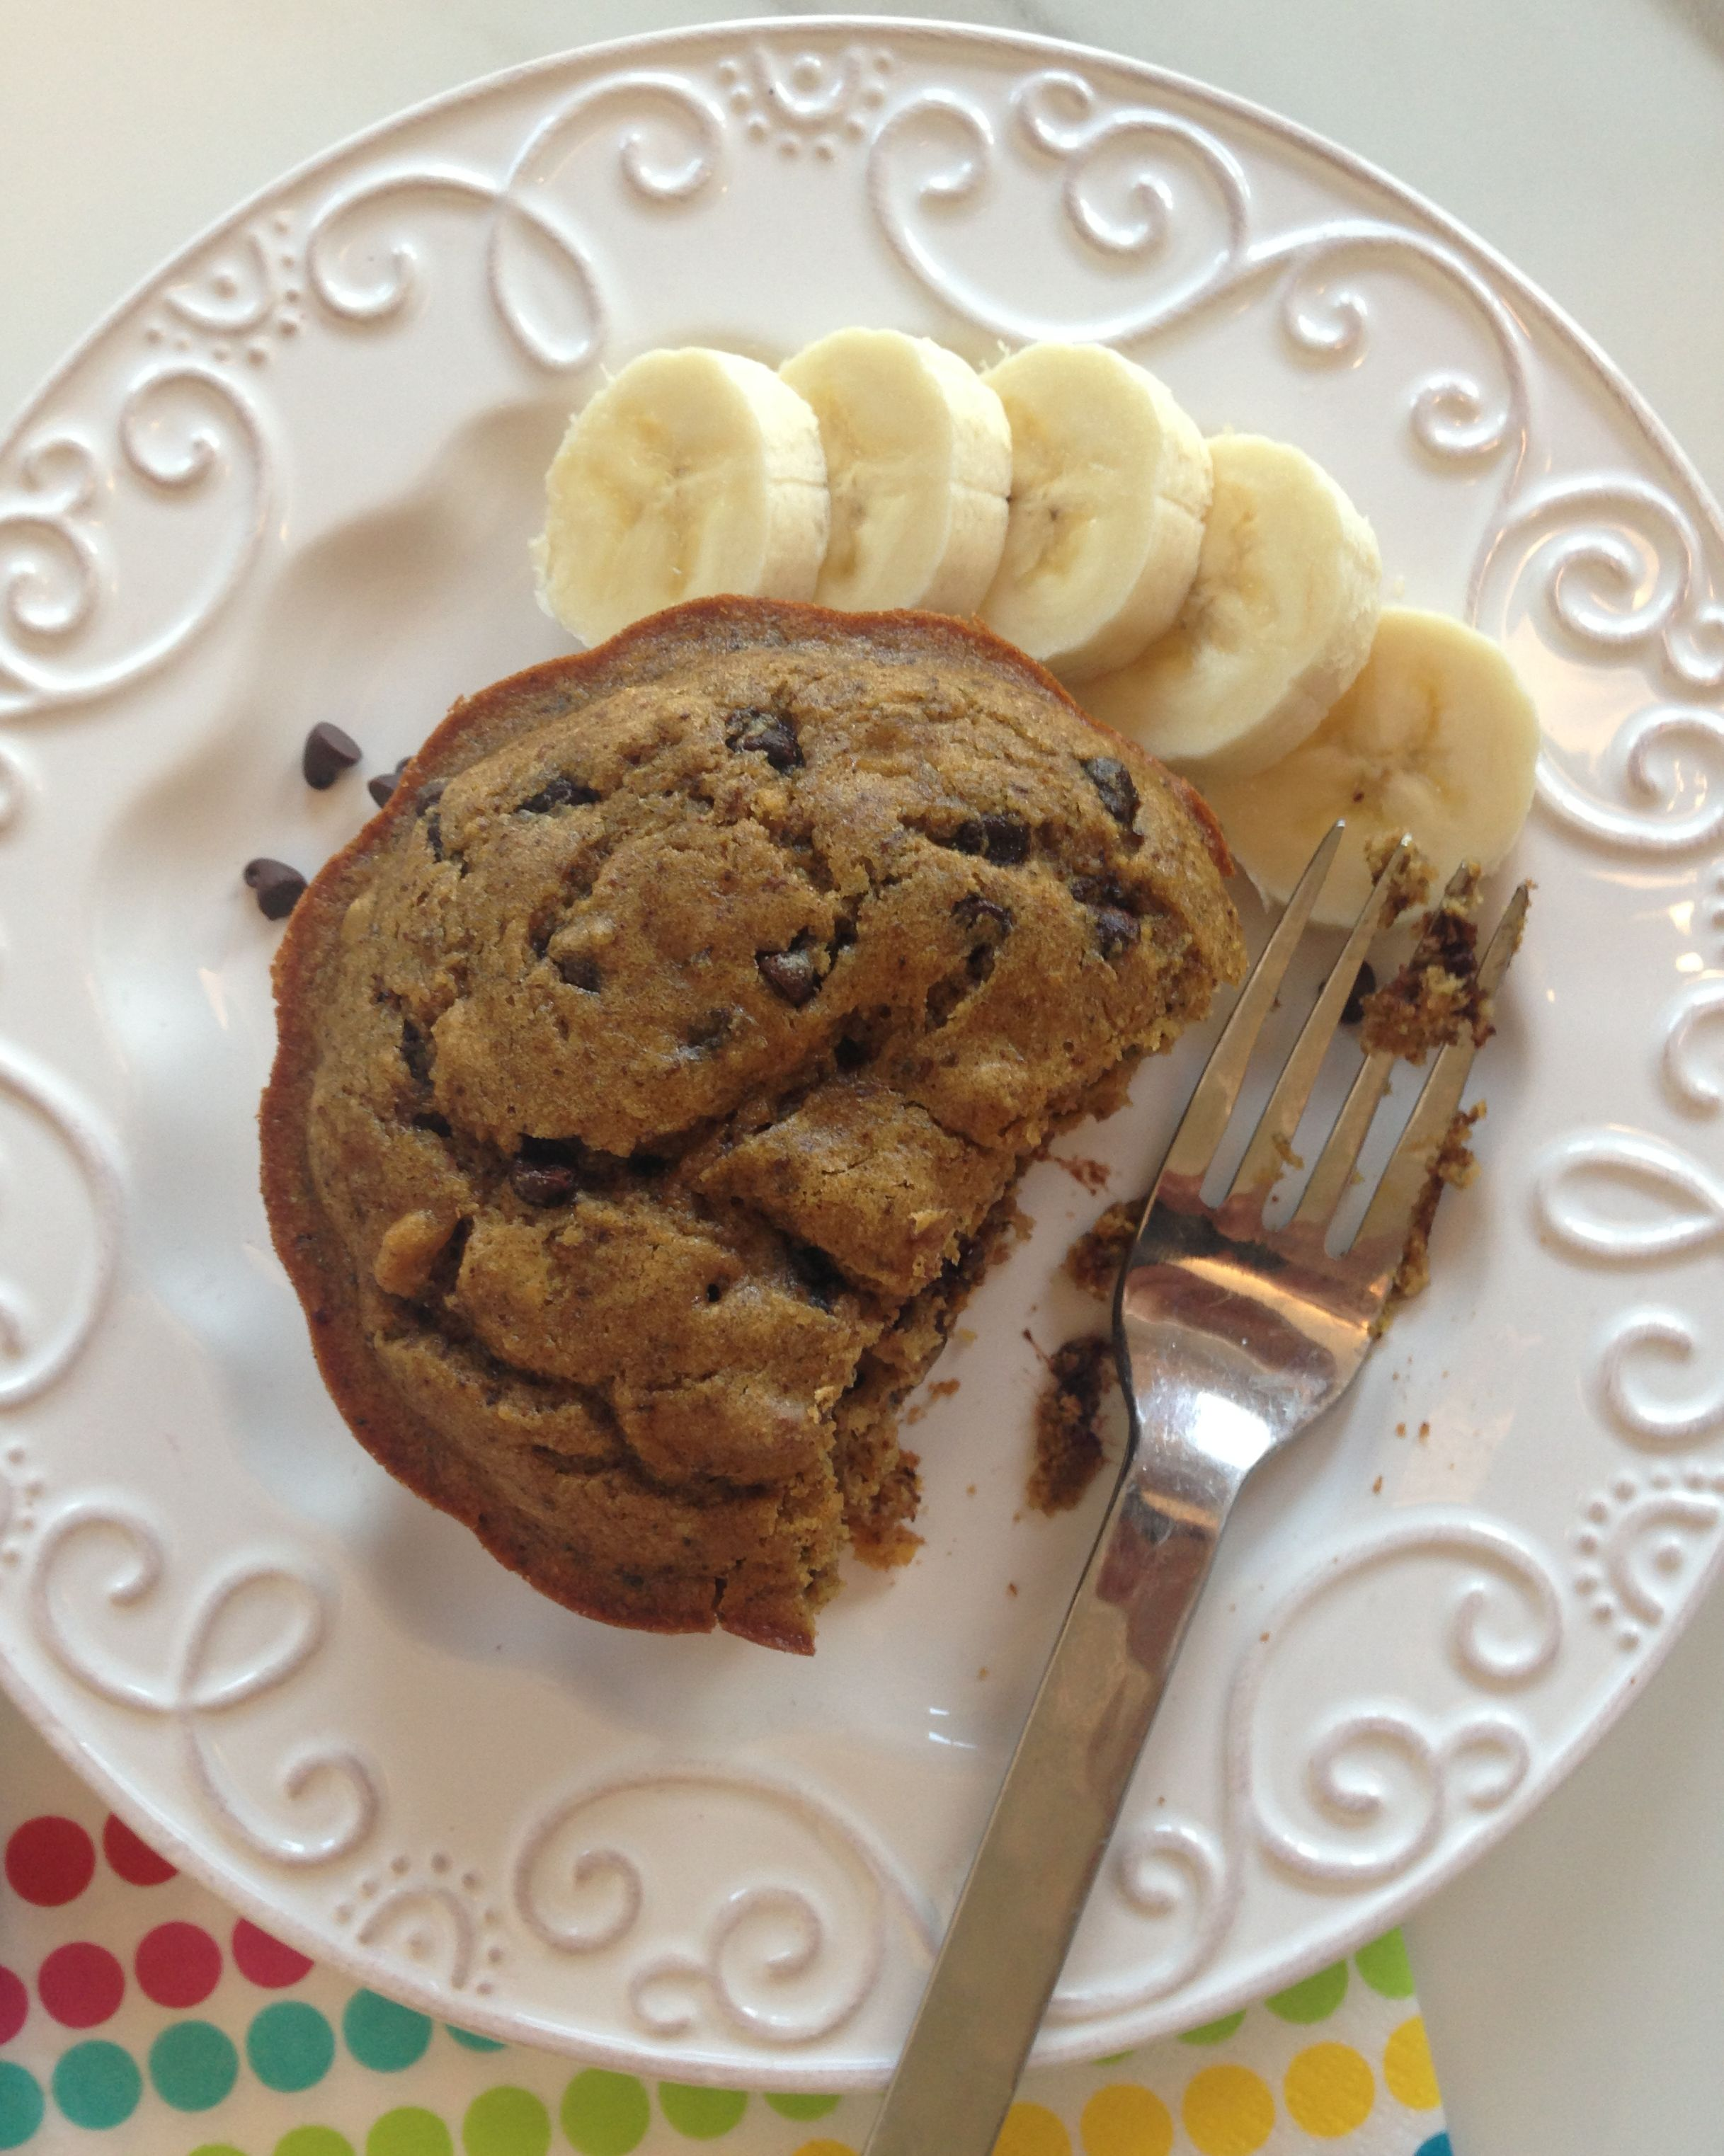 Chocolate Chip Banana Bundt Cake Recipe